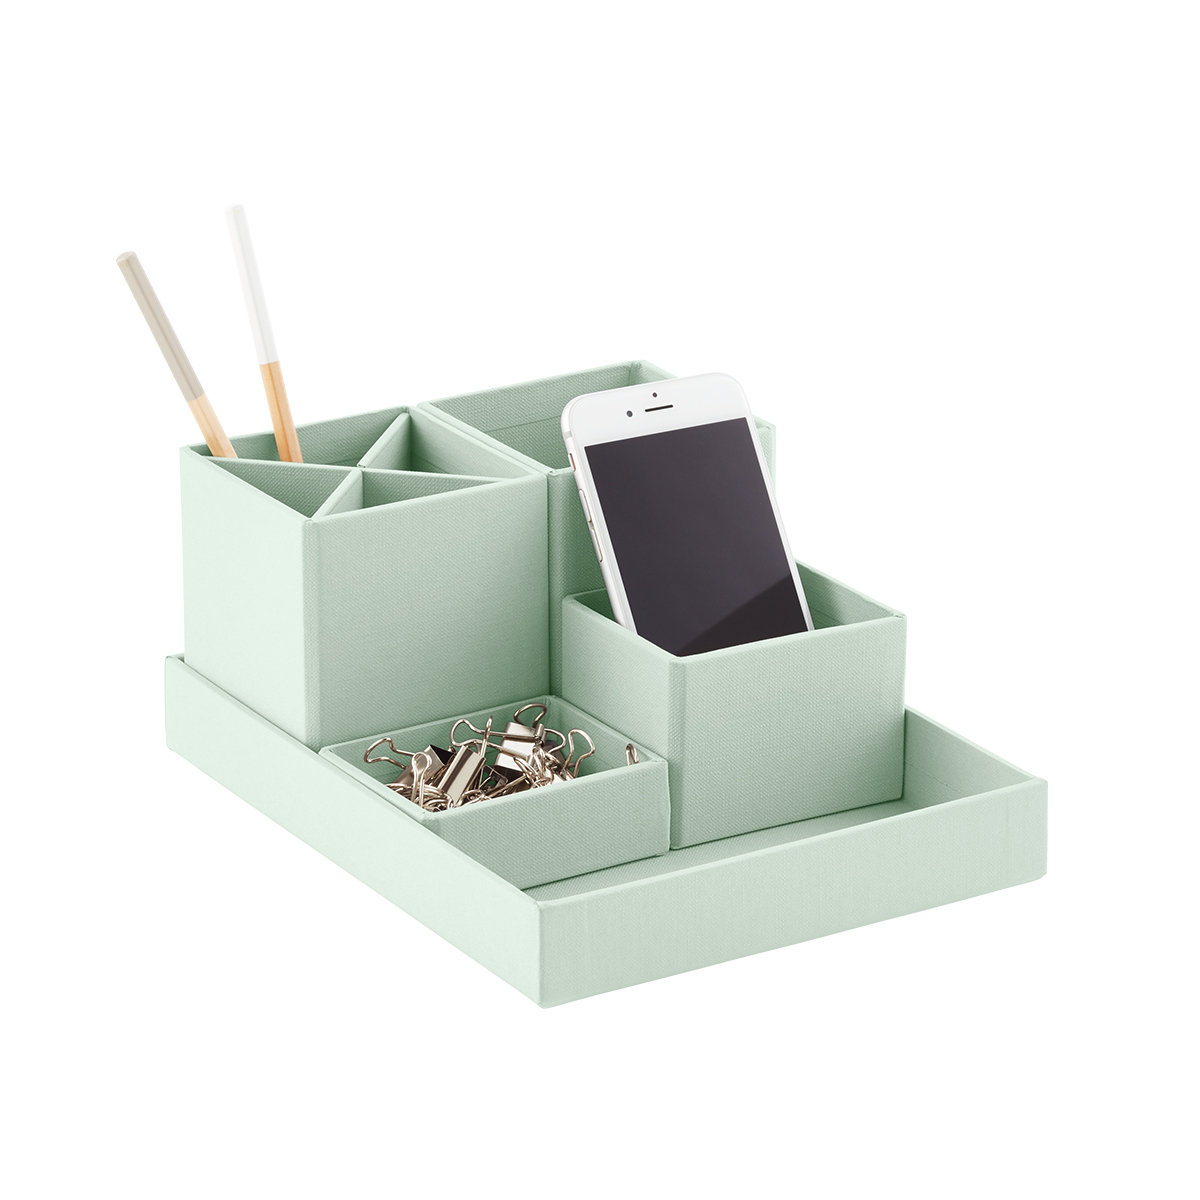 Desk Organizer advise